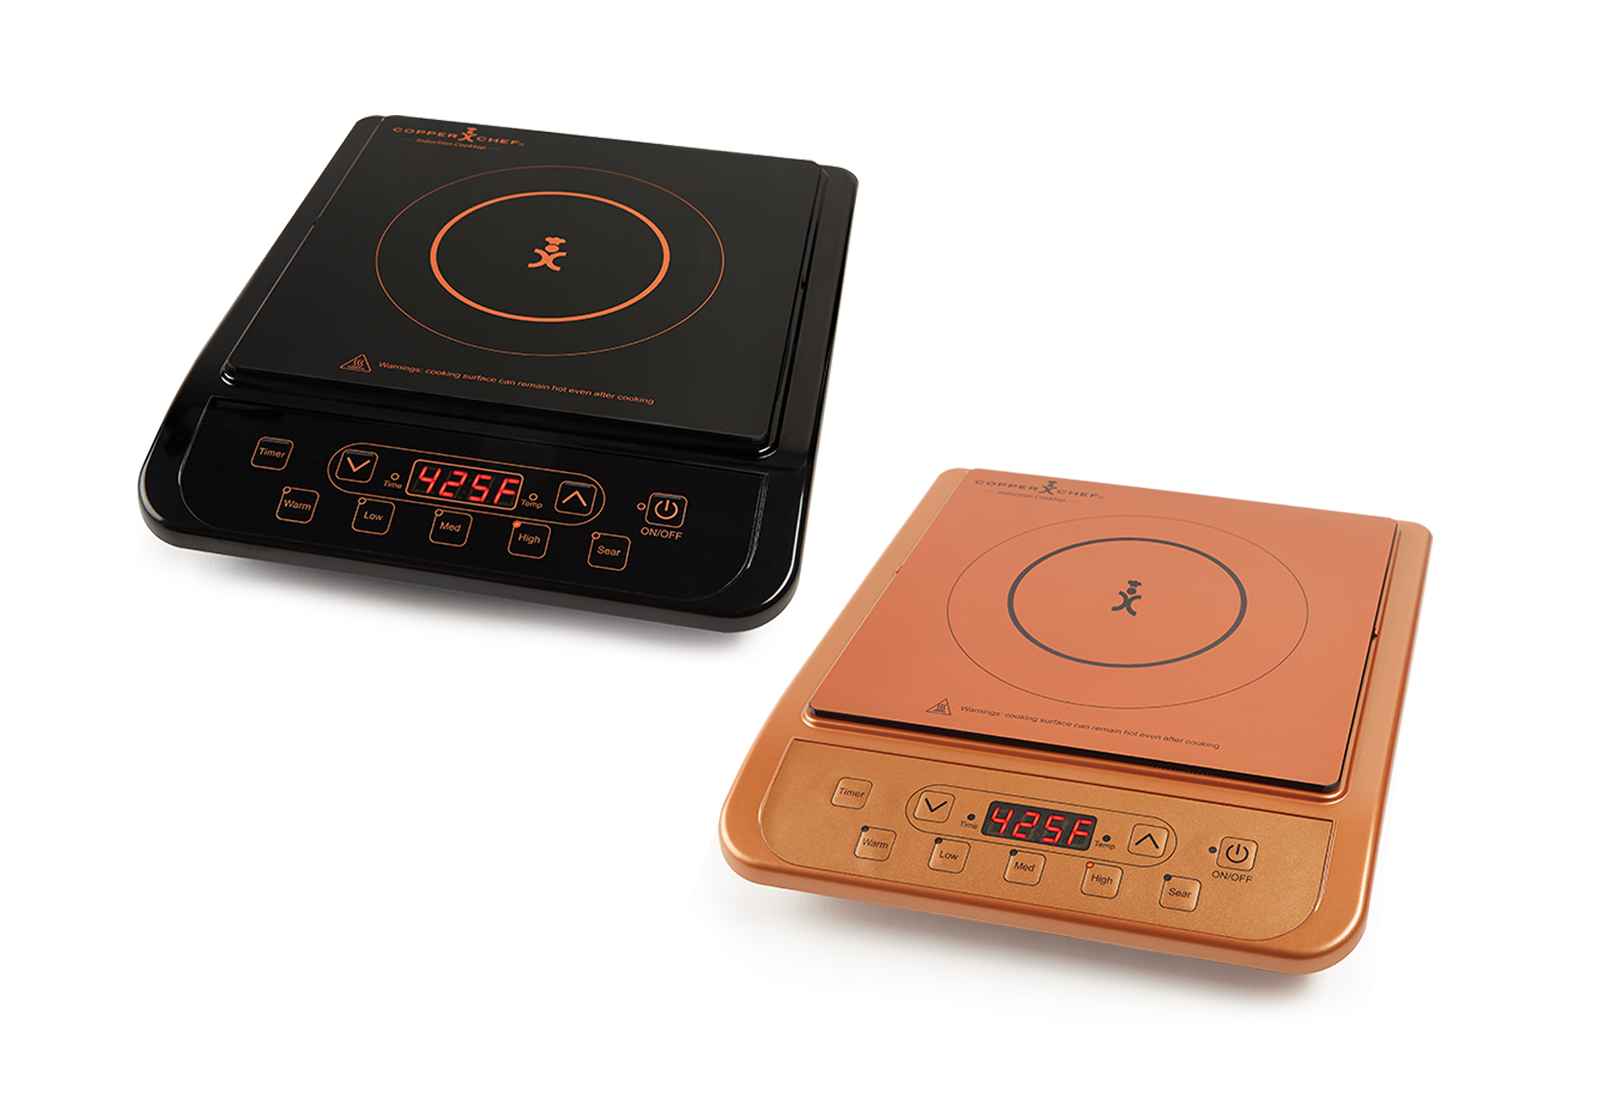 Copper Chef Induction Cooktop Product Image